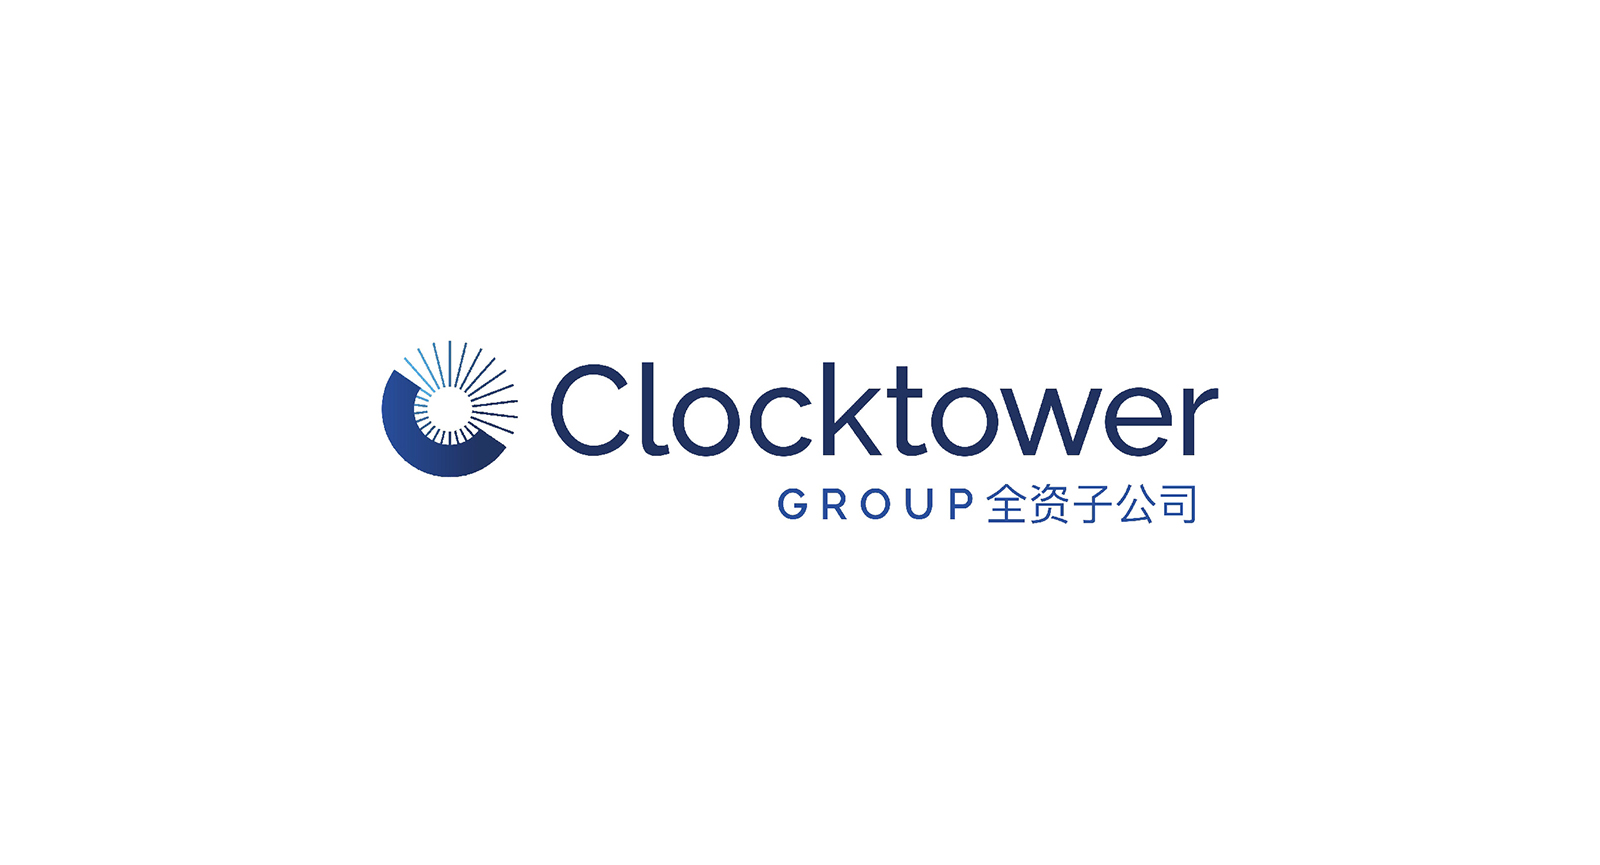 Clocktower chinese logo